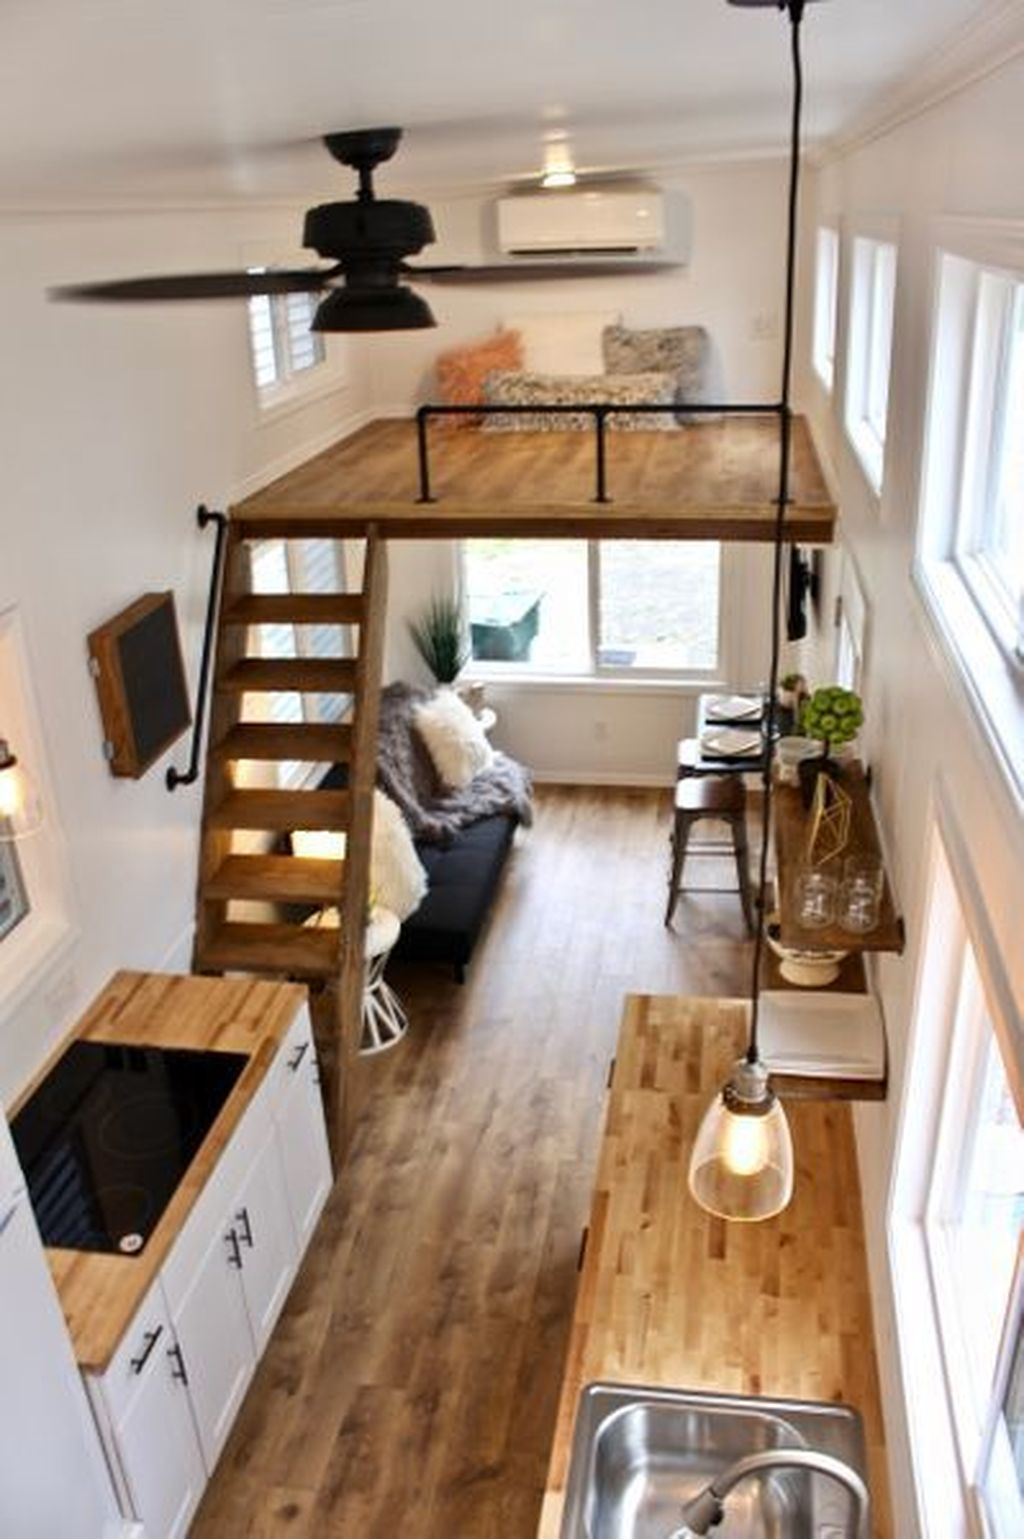 Tiny House Design Ideas To Inspire You Easy Furniture Diy Projects For Interior Design Cute Furnit In 2020 Tiny House Loft Best Tiny House Tiny House Interior Design